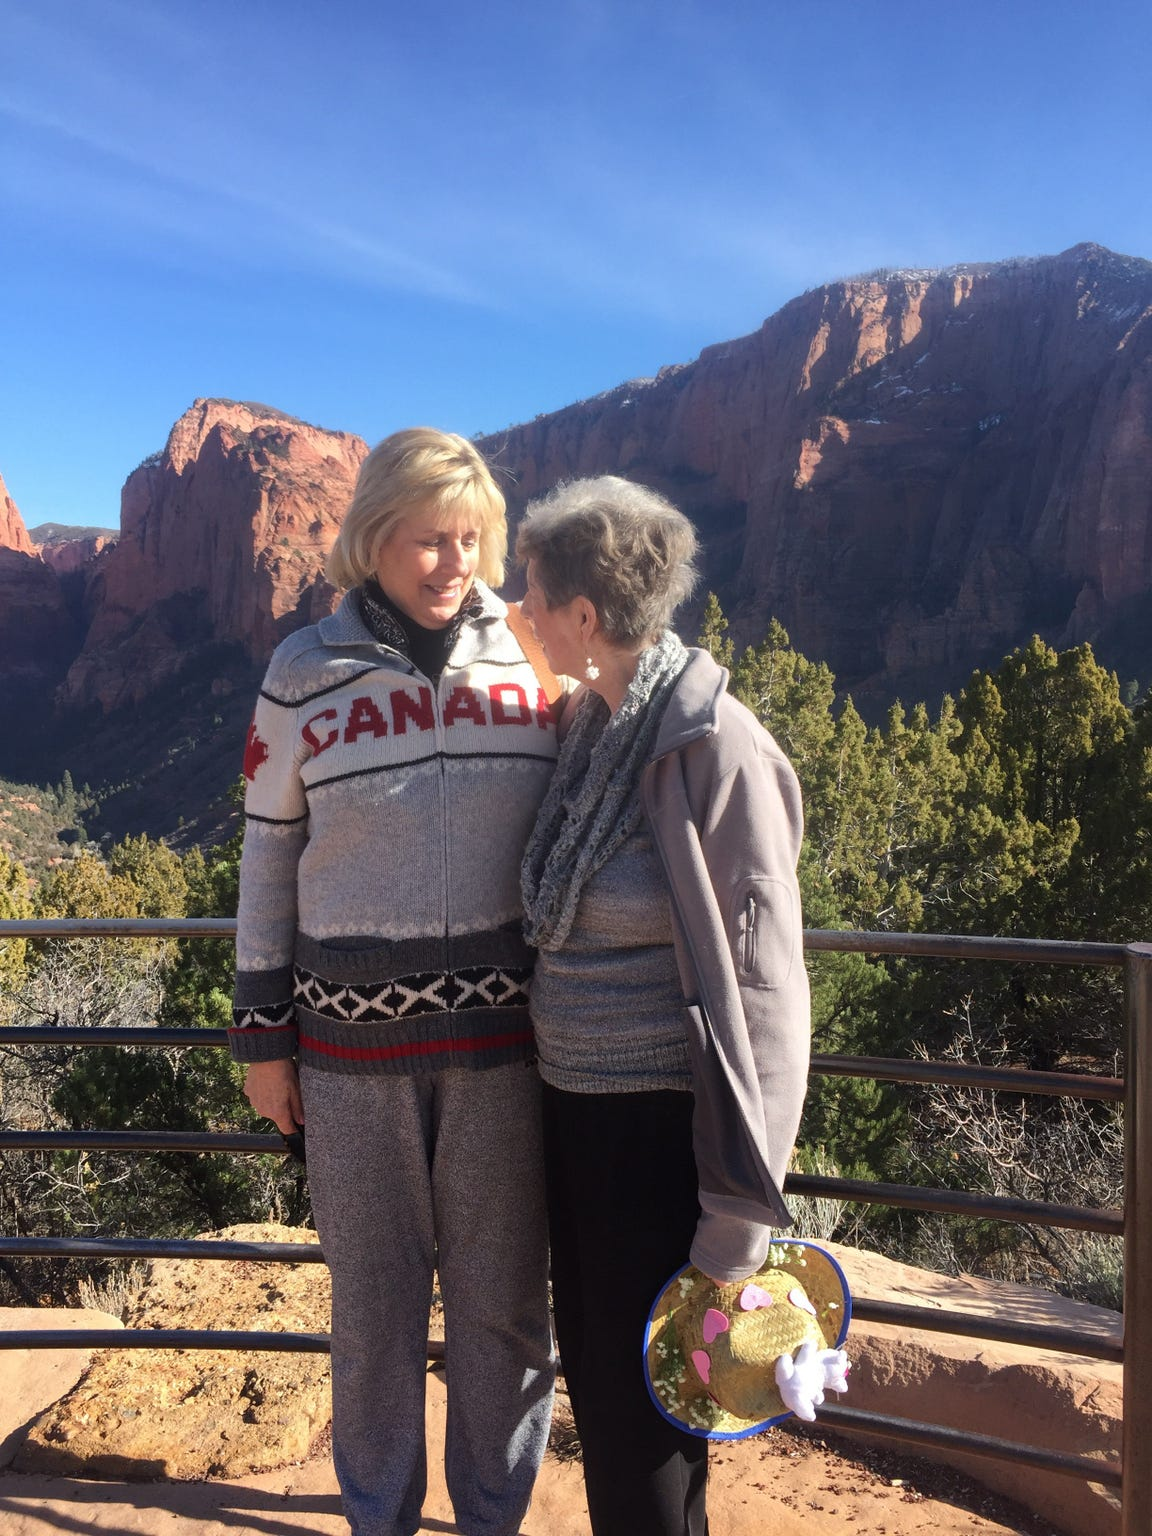 Kathy Kirkland (left) and her mother, Joan Harrison, visit Kolob Canyon in Zion National Park during Kirkland's trip to Utah in January 2018.